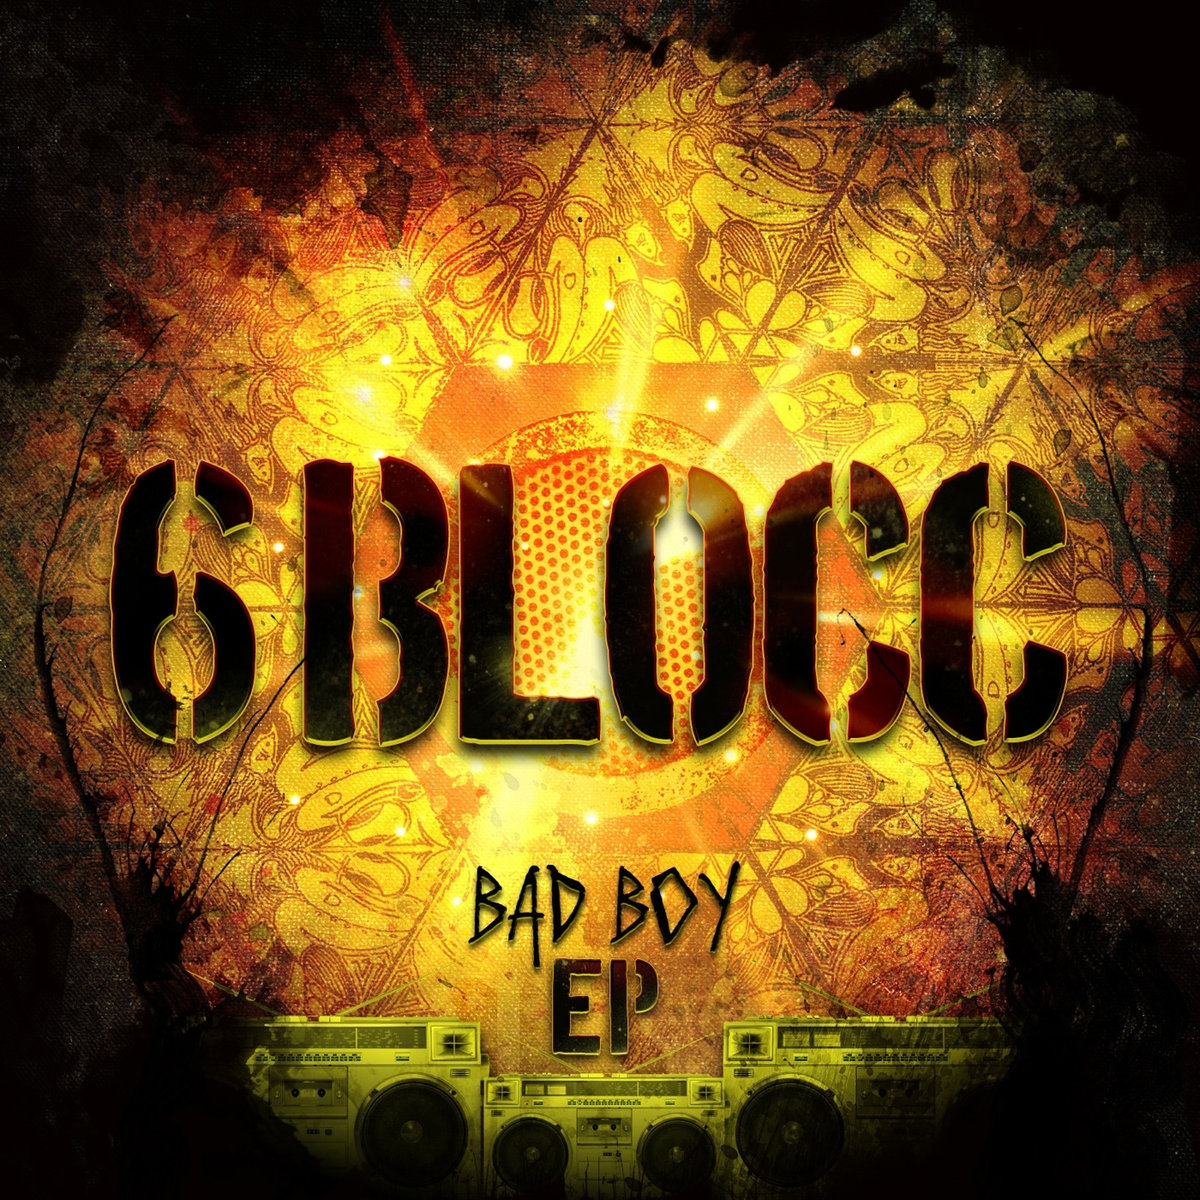 6Blocc - Bad Boy (Zombie-J Remix) @ 'Bad Boy' album (electronic, dubstep)